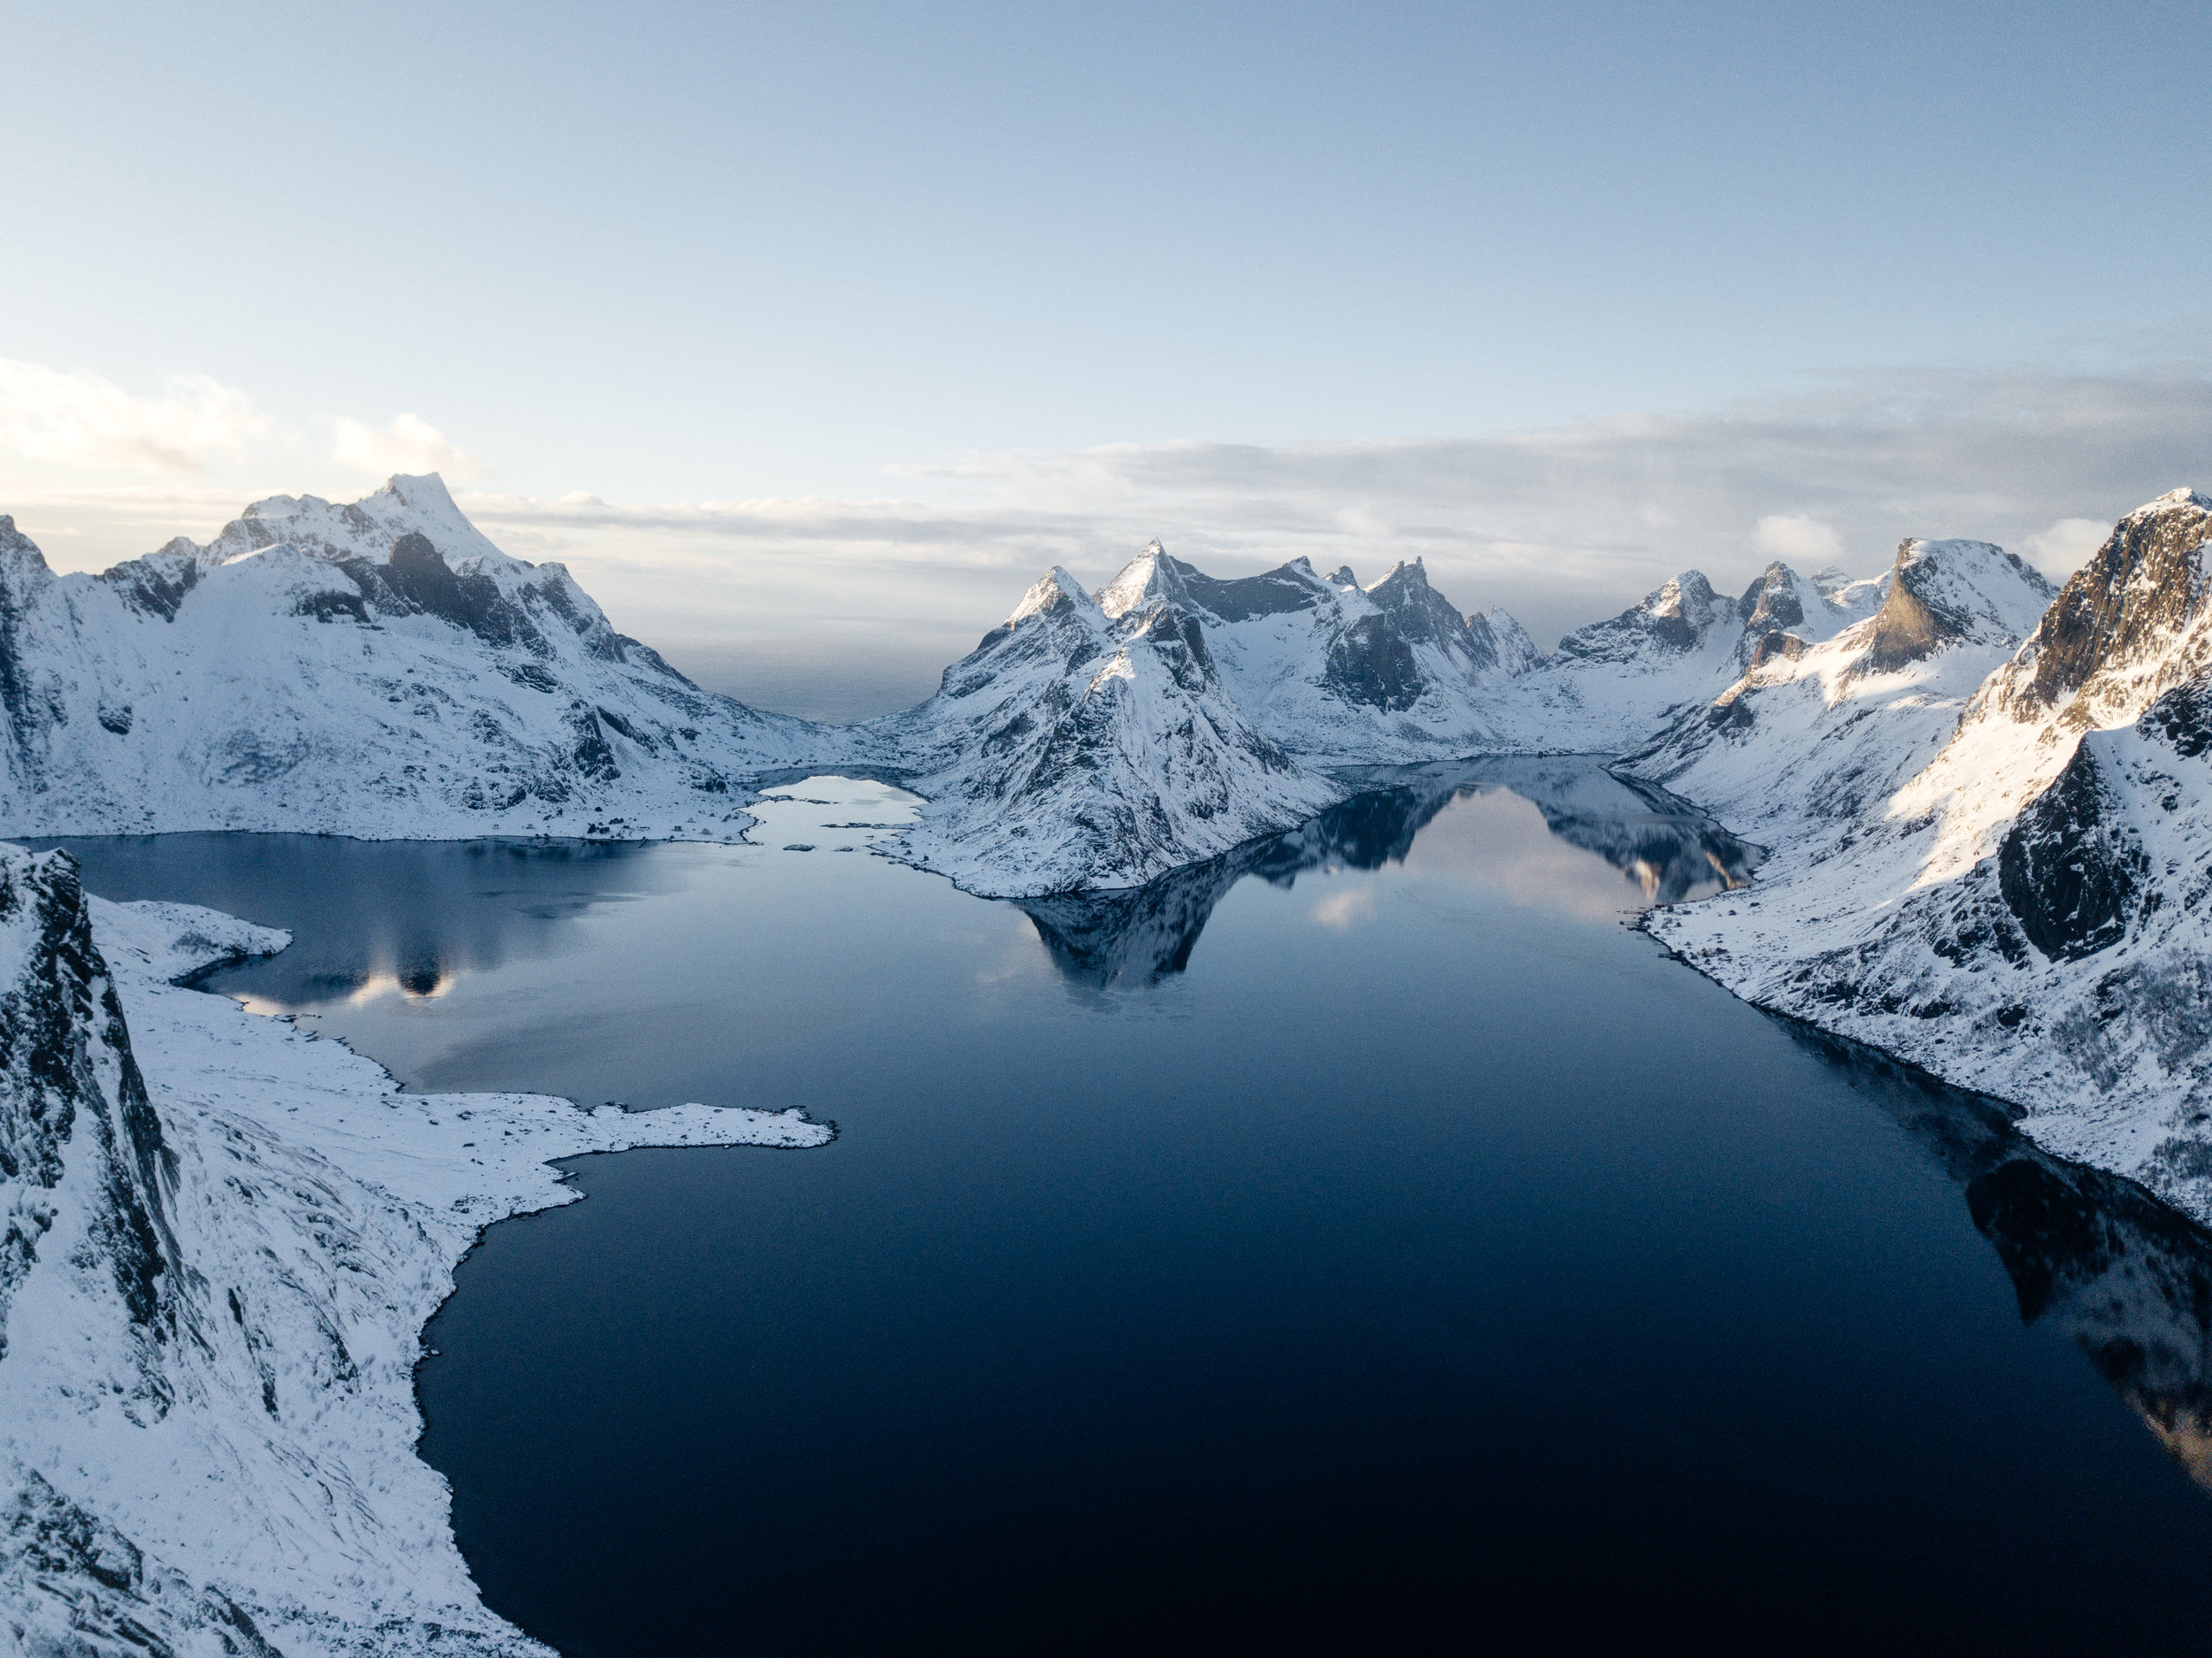 LOFOTEN WINTER WORKSHOP - From 15th to 22th March 2019